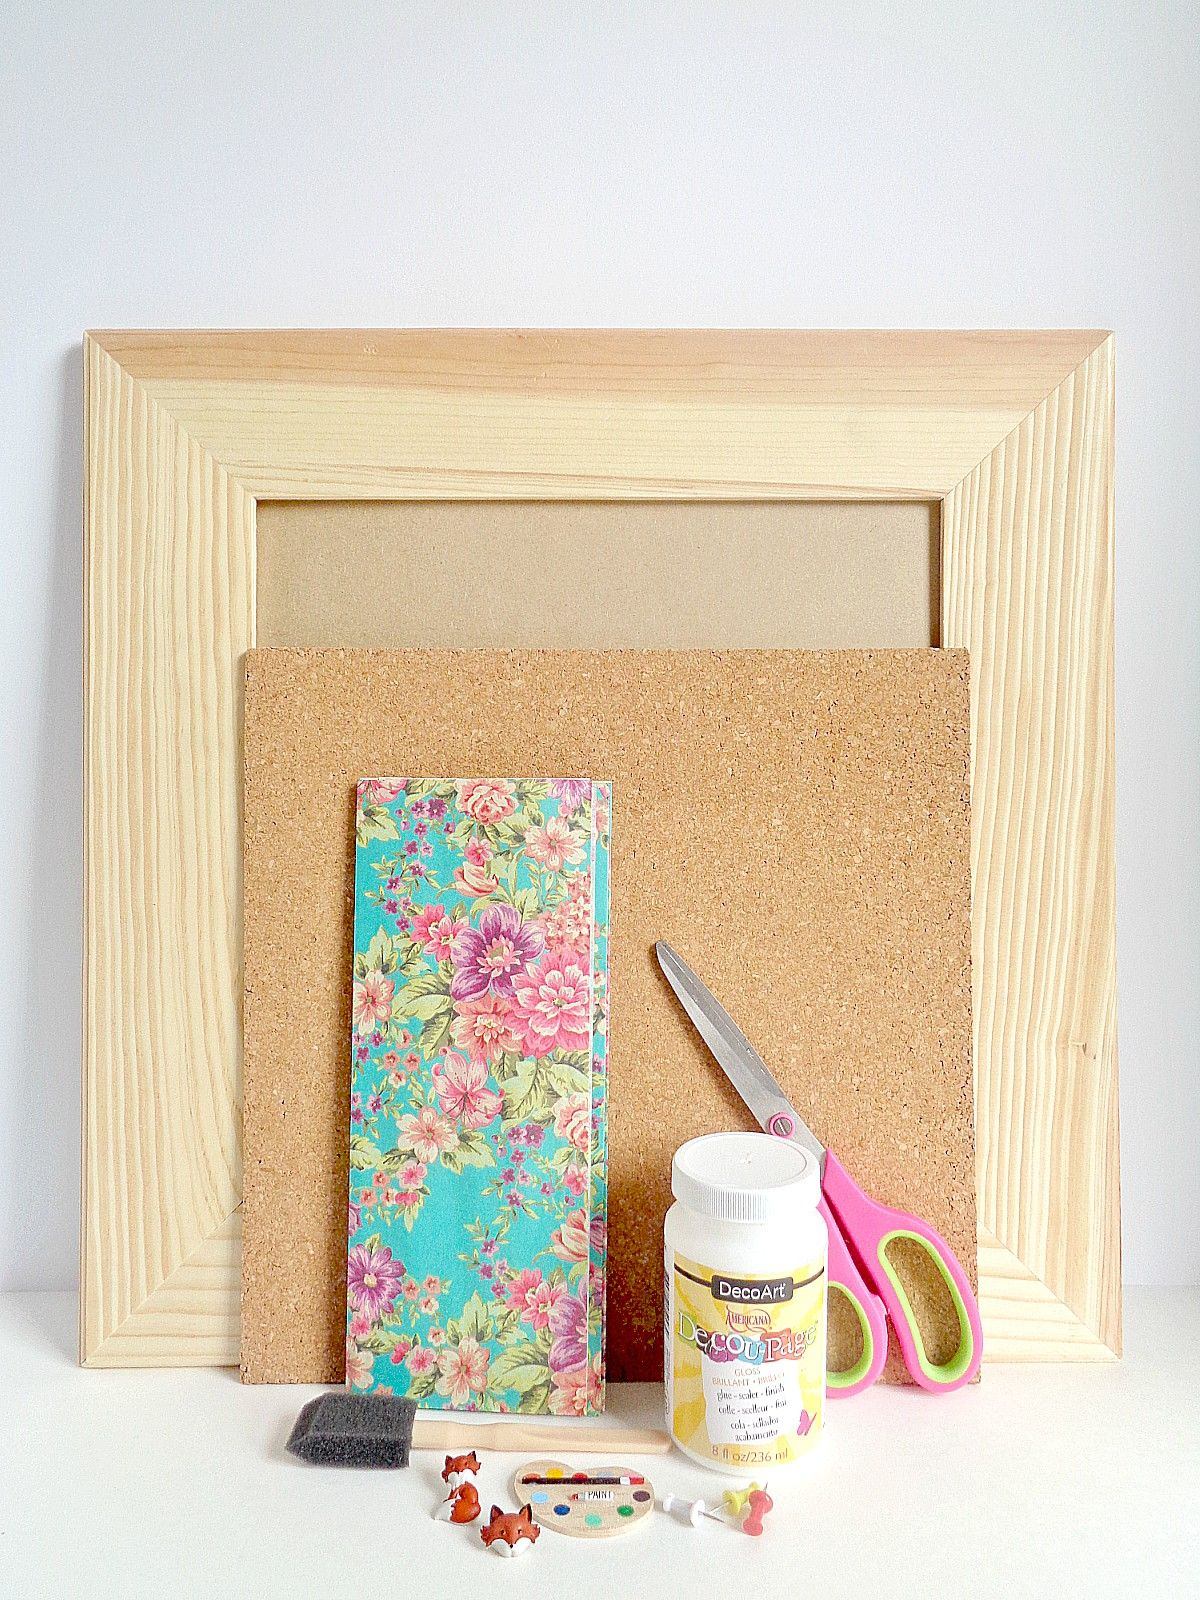 Wooden Framed Cork Board